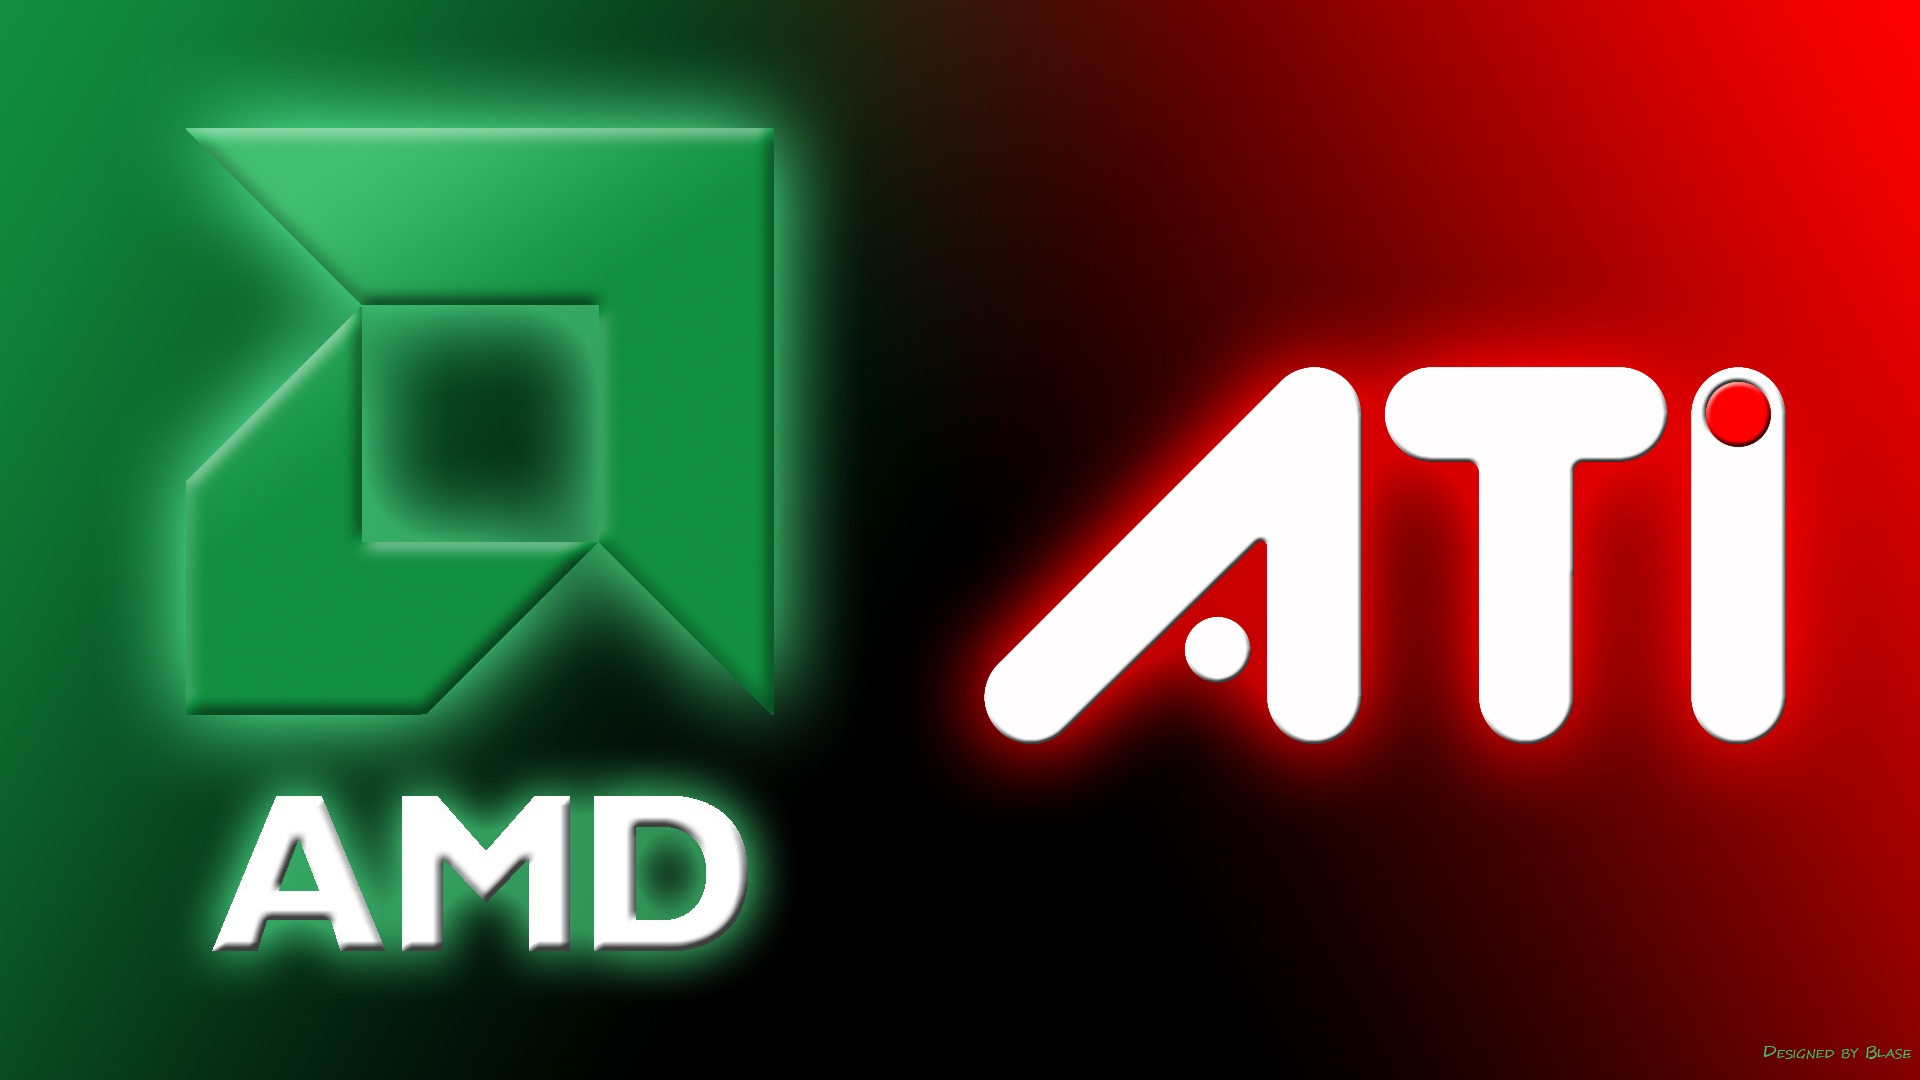 AMD and ATI 1920x1080 Full HD 2K